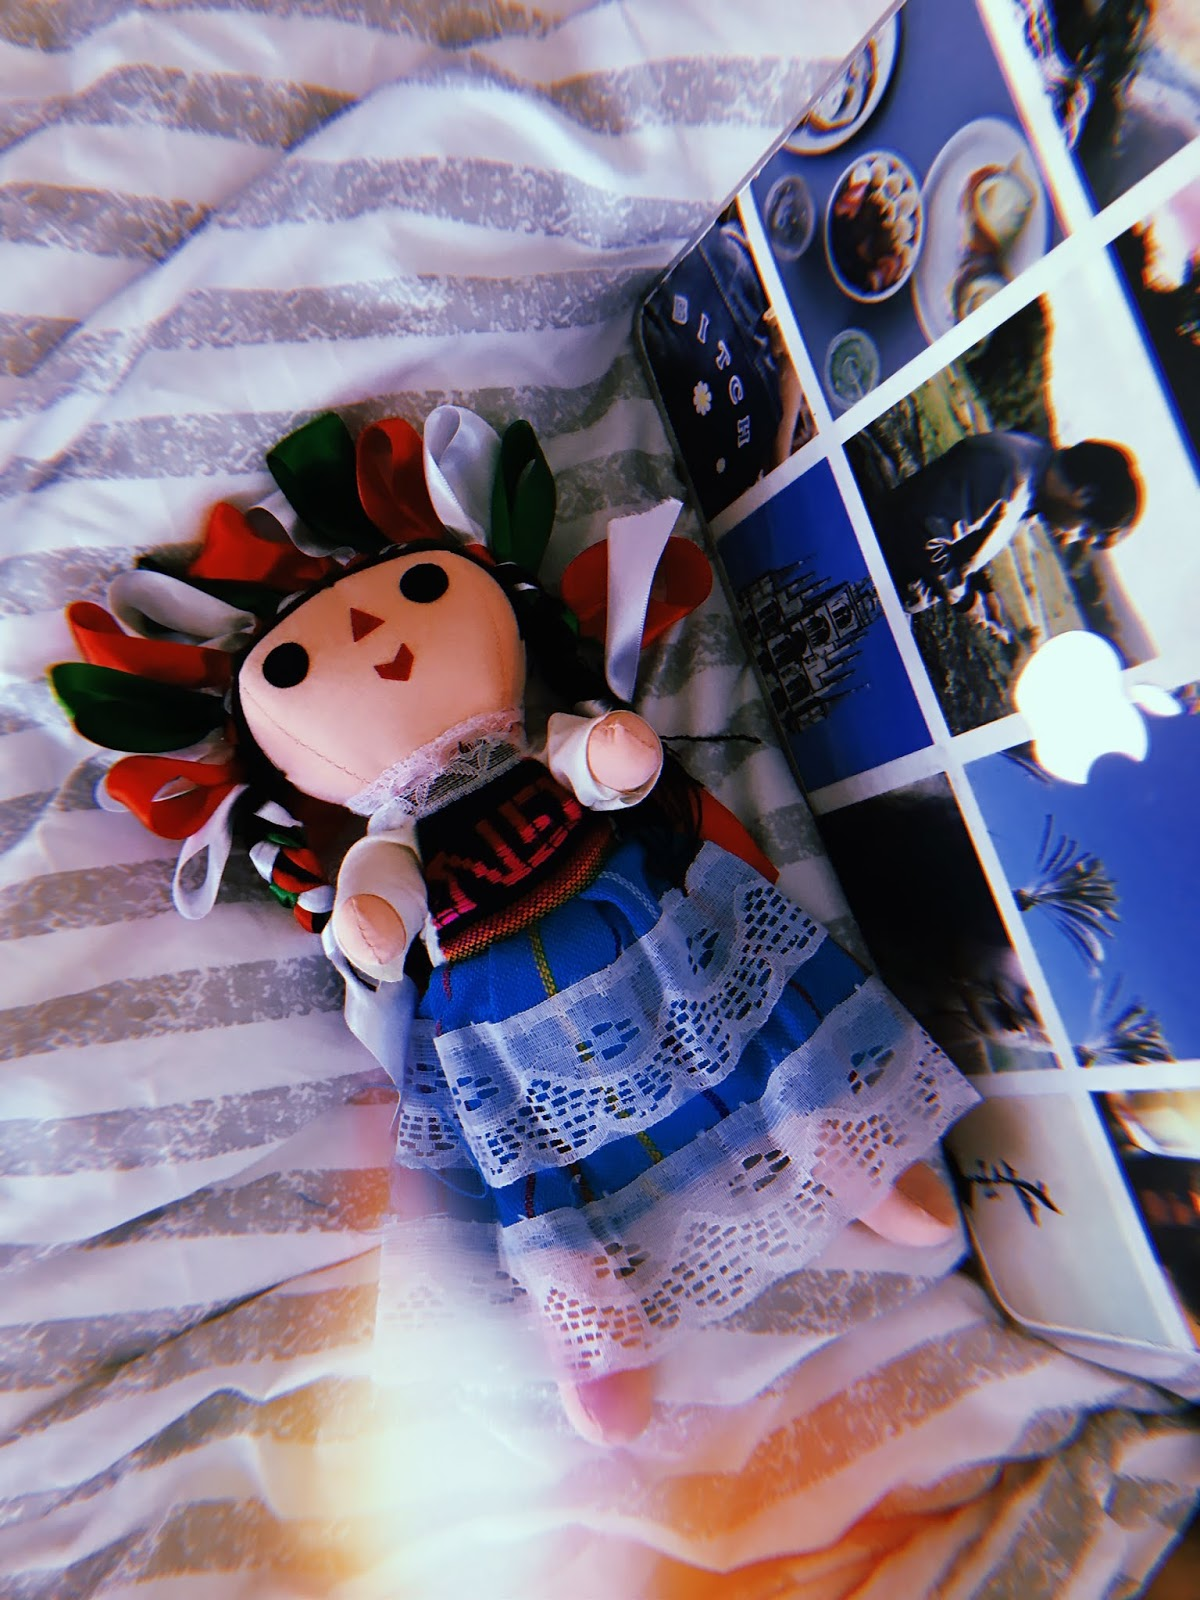 Hanging out at the Queretaro Airbnb with my adorable Maria doll, made by a local woman.